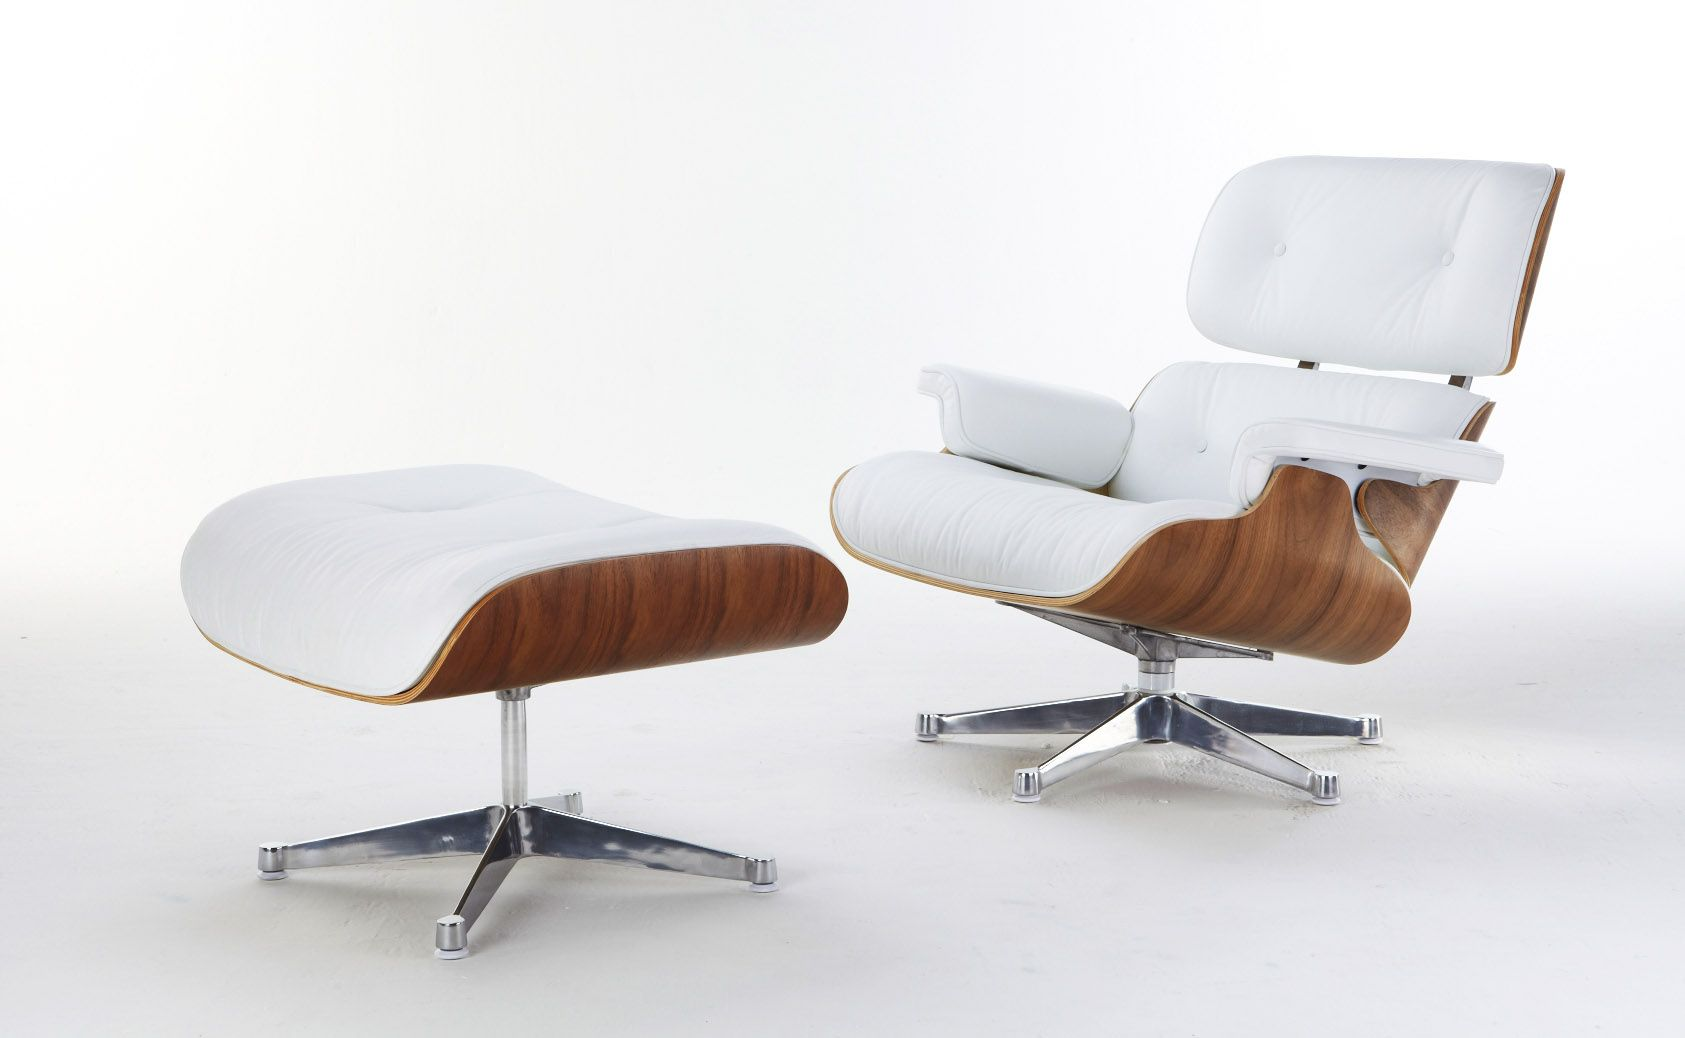 Eames Lounge Chair White Leather Eames Lounge Chair